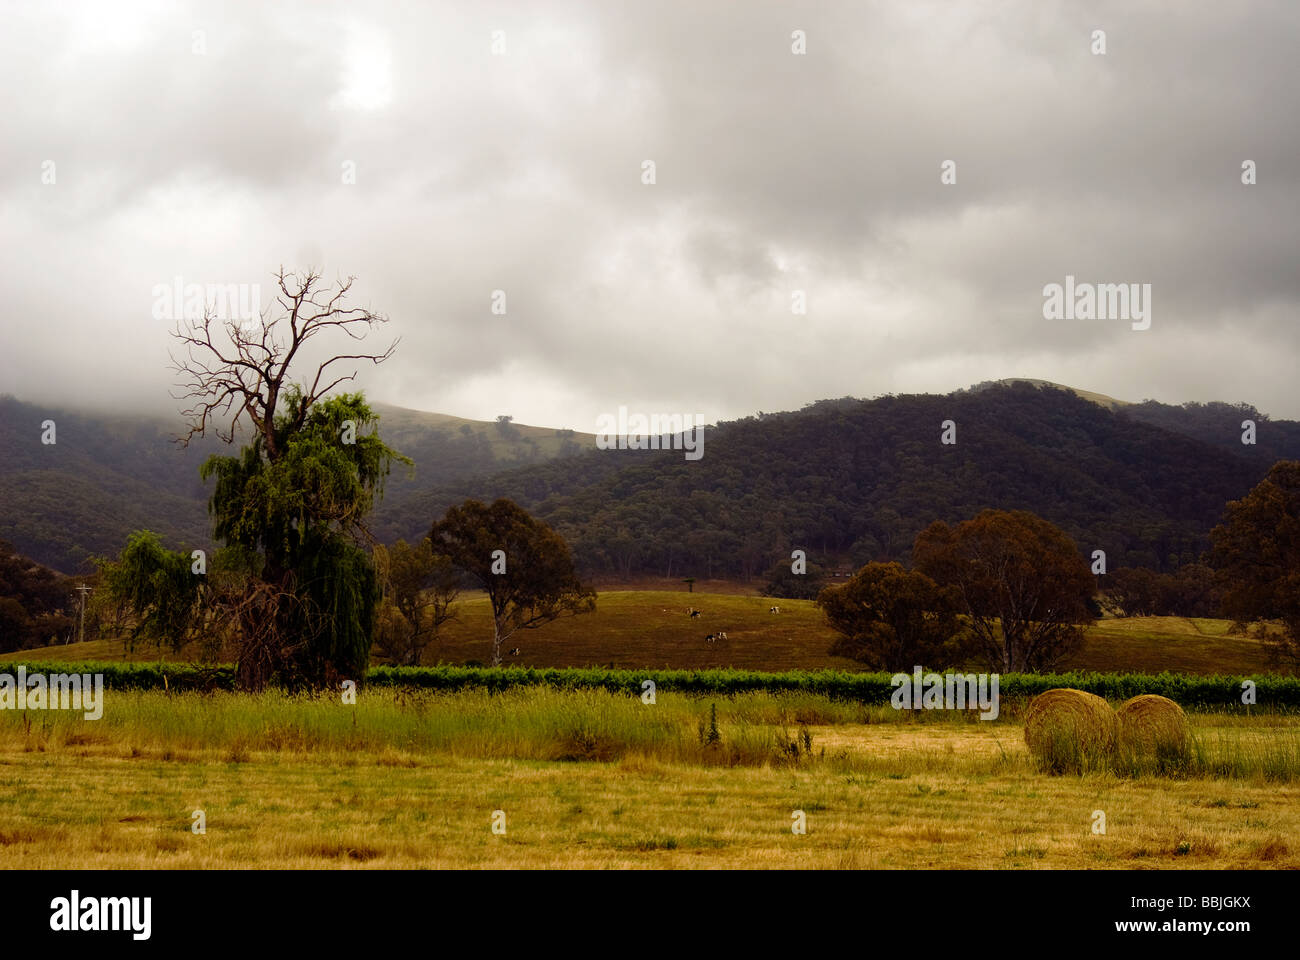 King Valley Morning - Stock Image